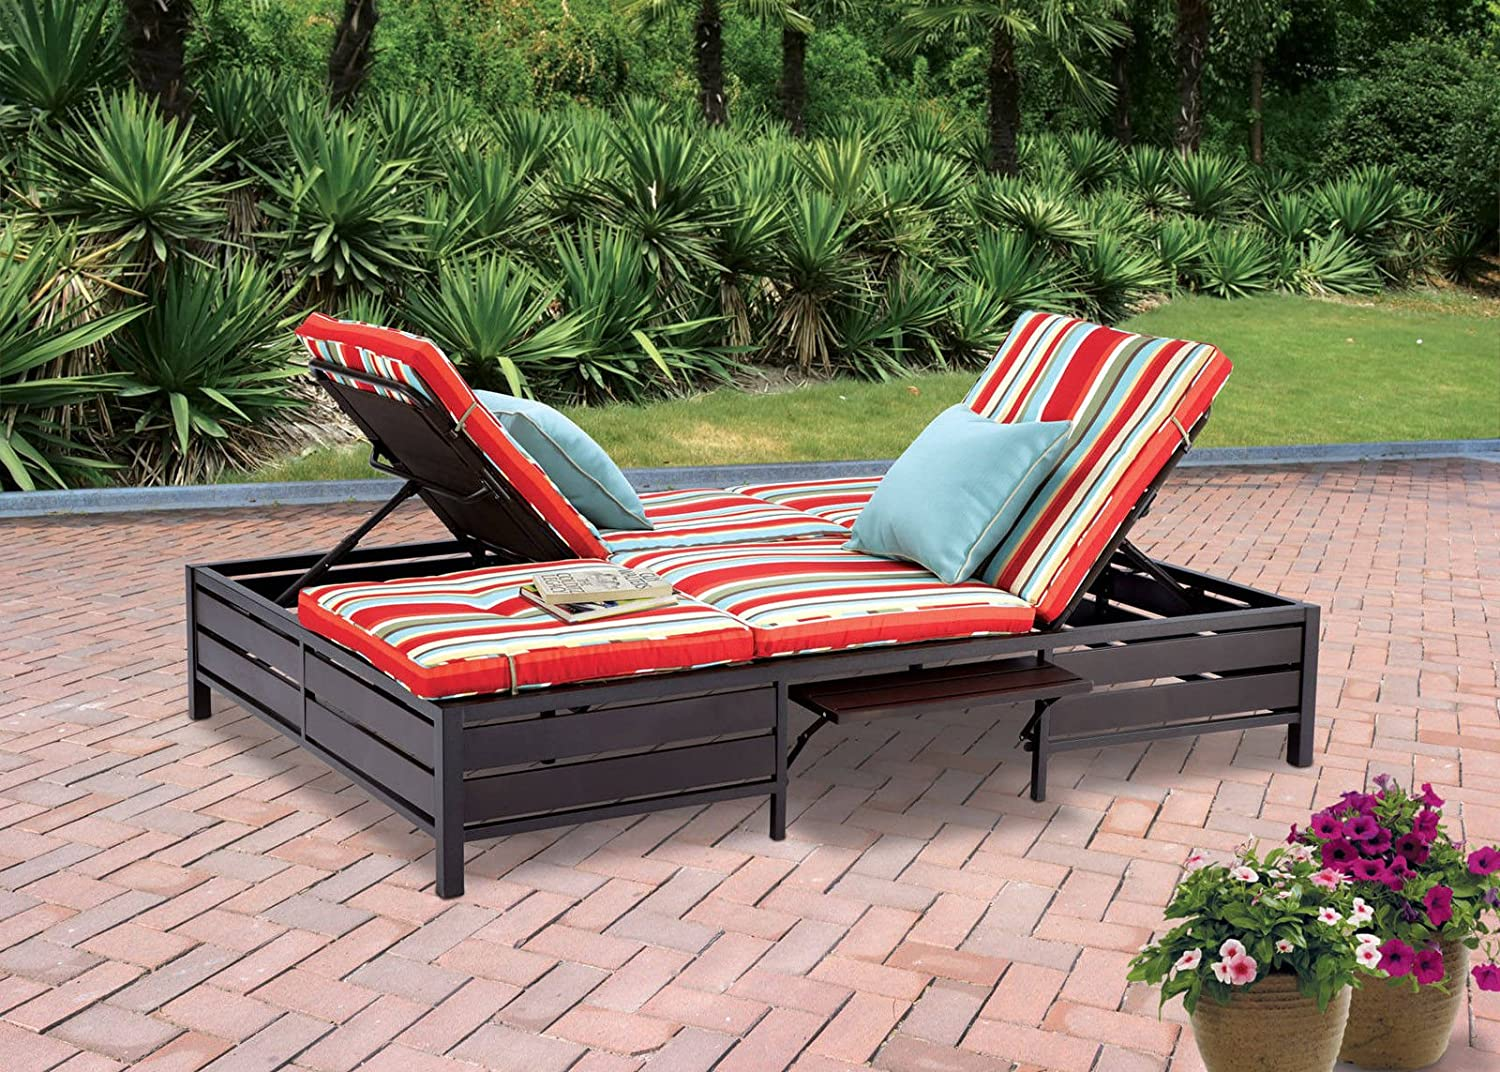 Double lounge chair outdoor - Amazon Com Double Chaise Lounger This Red Stripe Outdoor Chaise Lounge Is Comfortable Sun Patio Furniture Guaranteed Which Can Also Be Used In Your